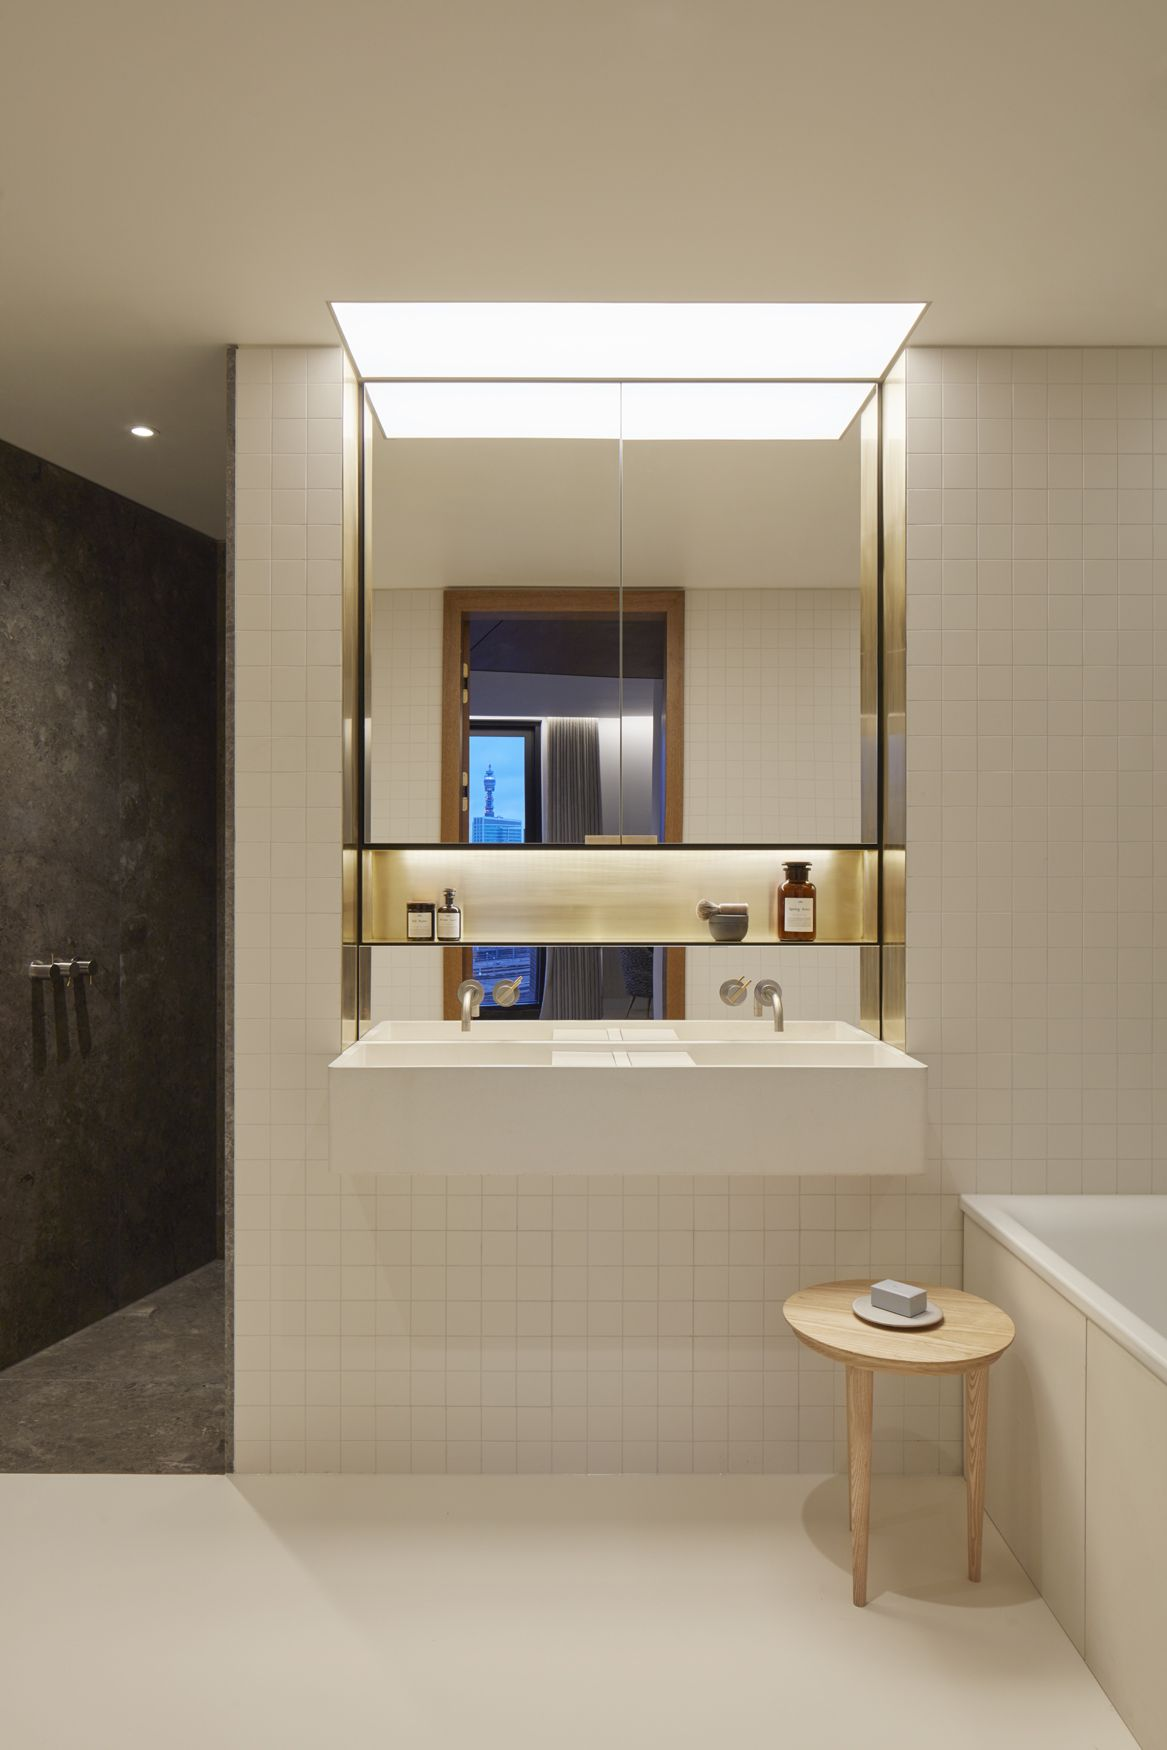 A material palette of engineered board brushed stainless steel and brass is applied throughout the